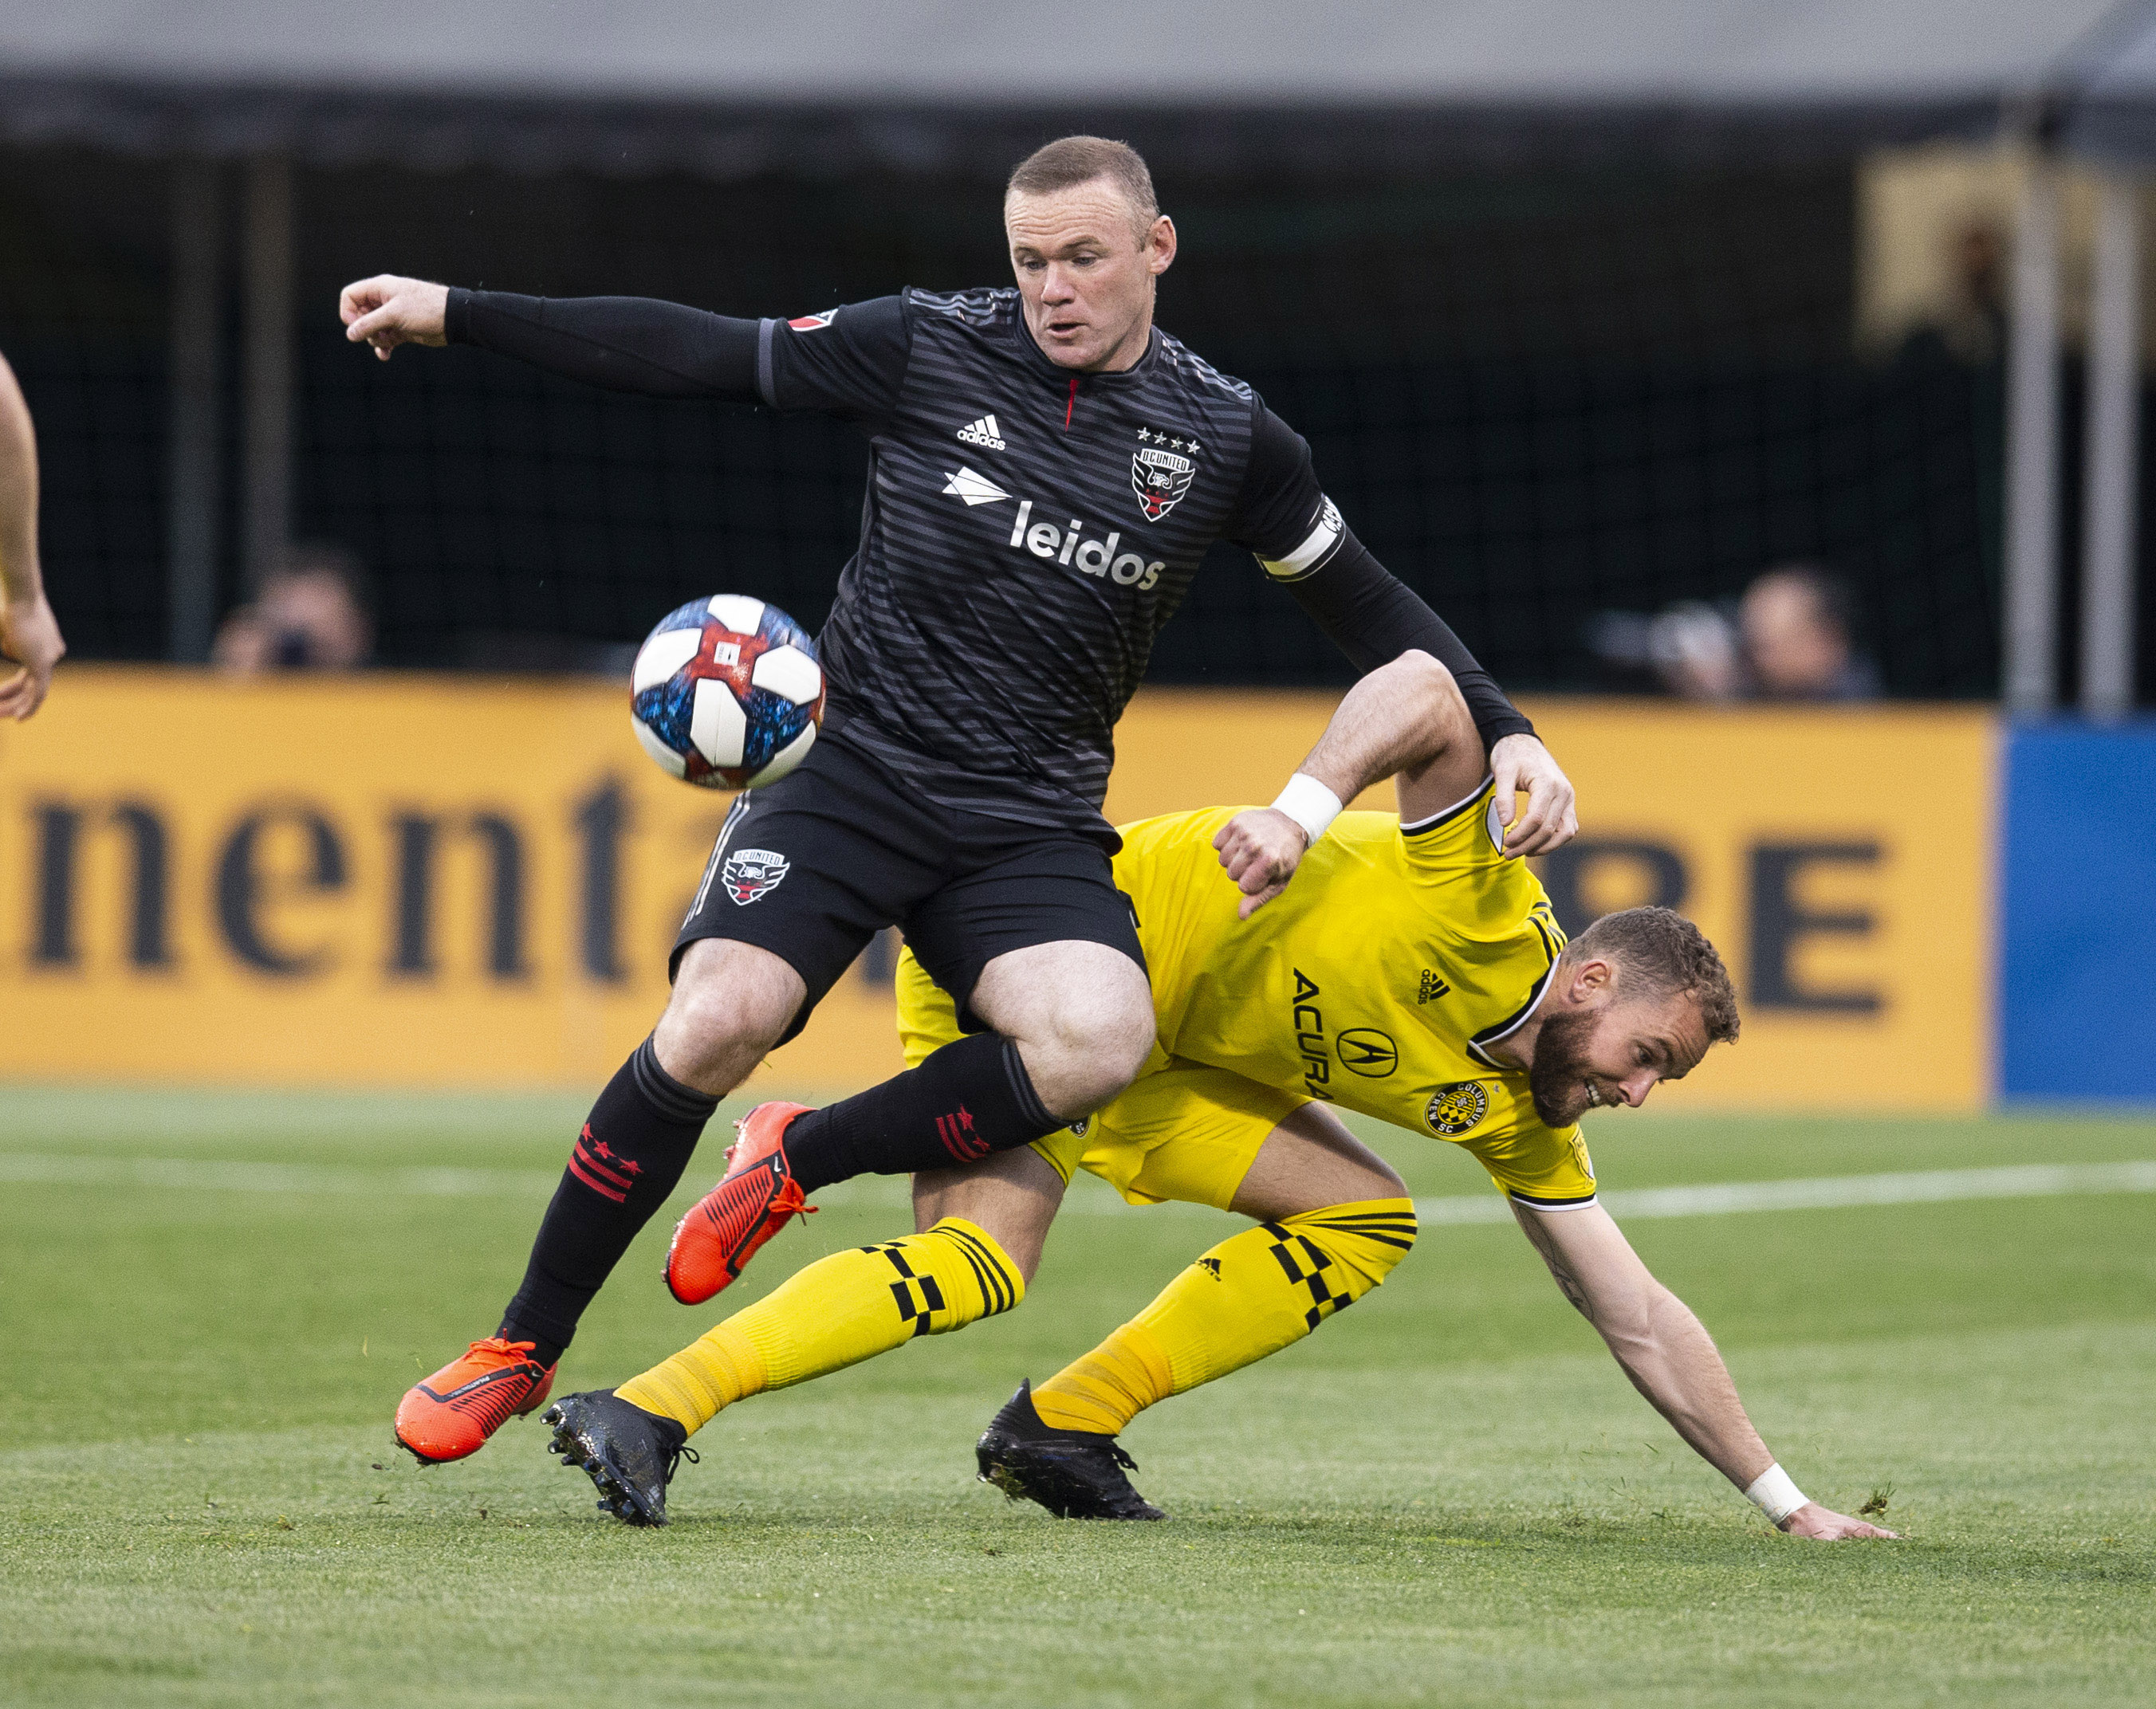 7a9b47c4fe59 Columbus Crew drop third straight 1-0 loss to D.C. United - Massive ...